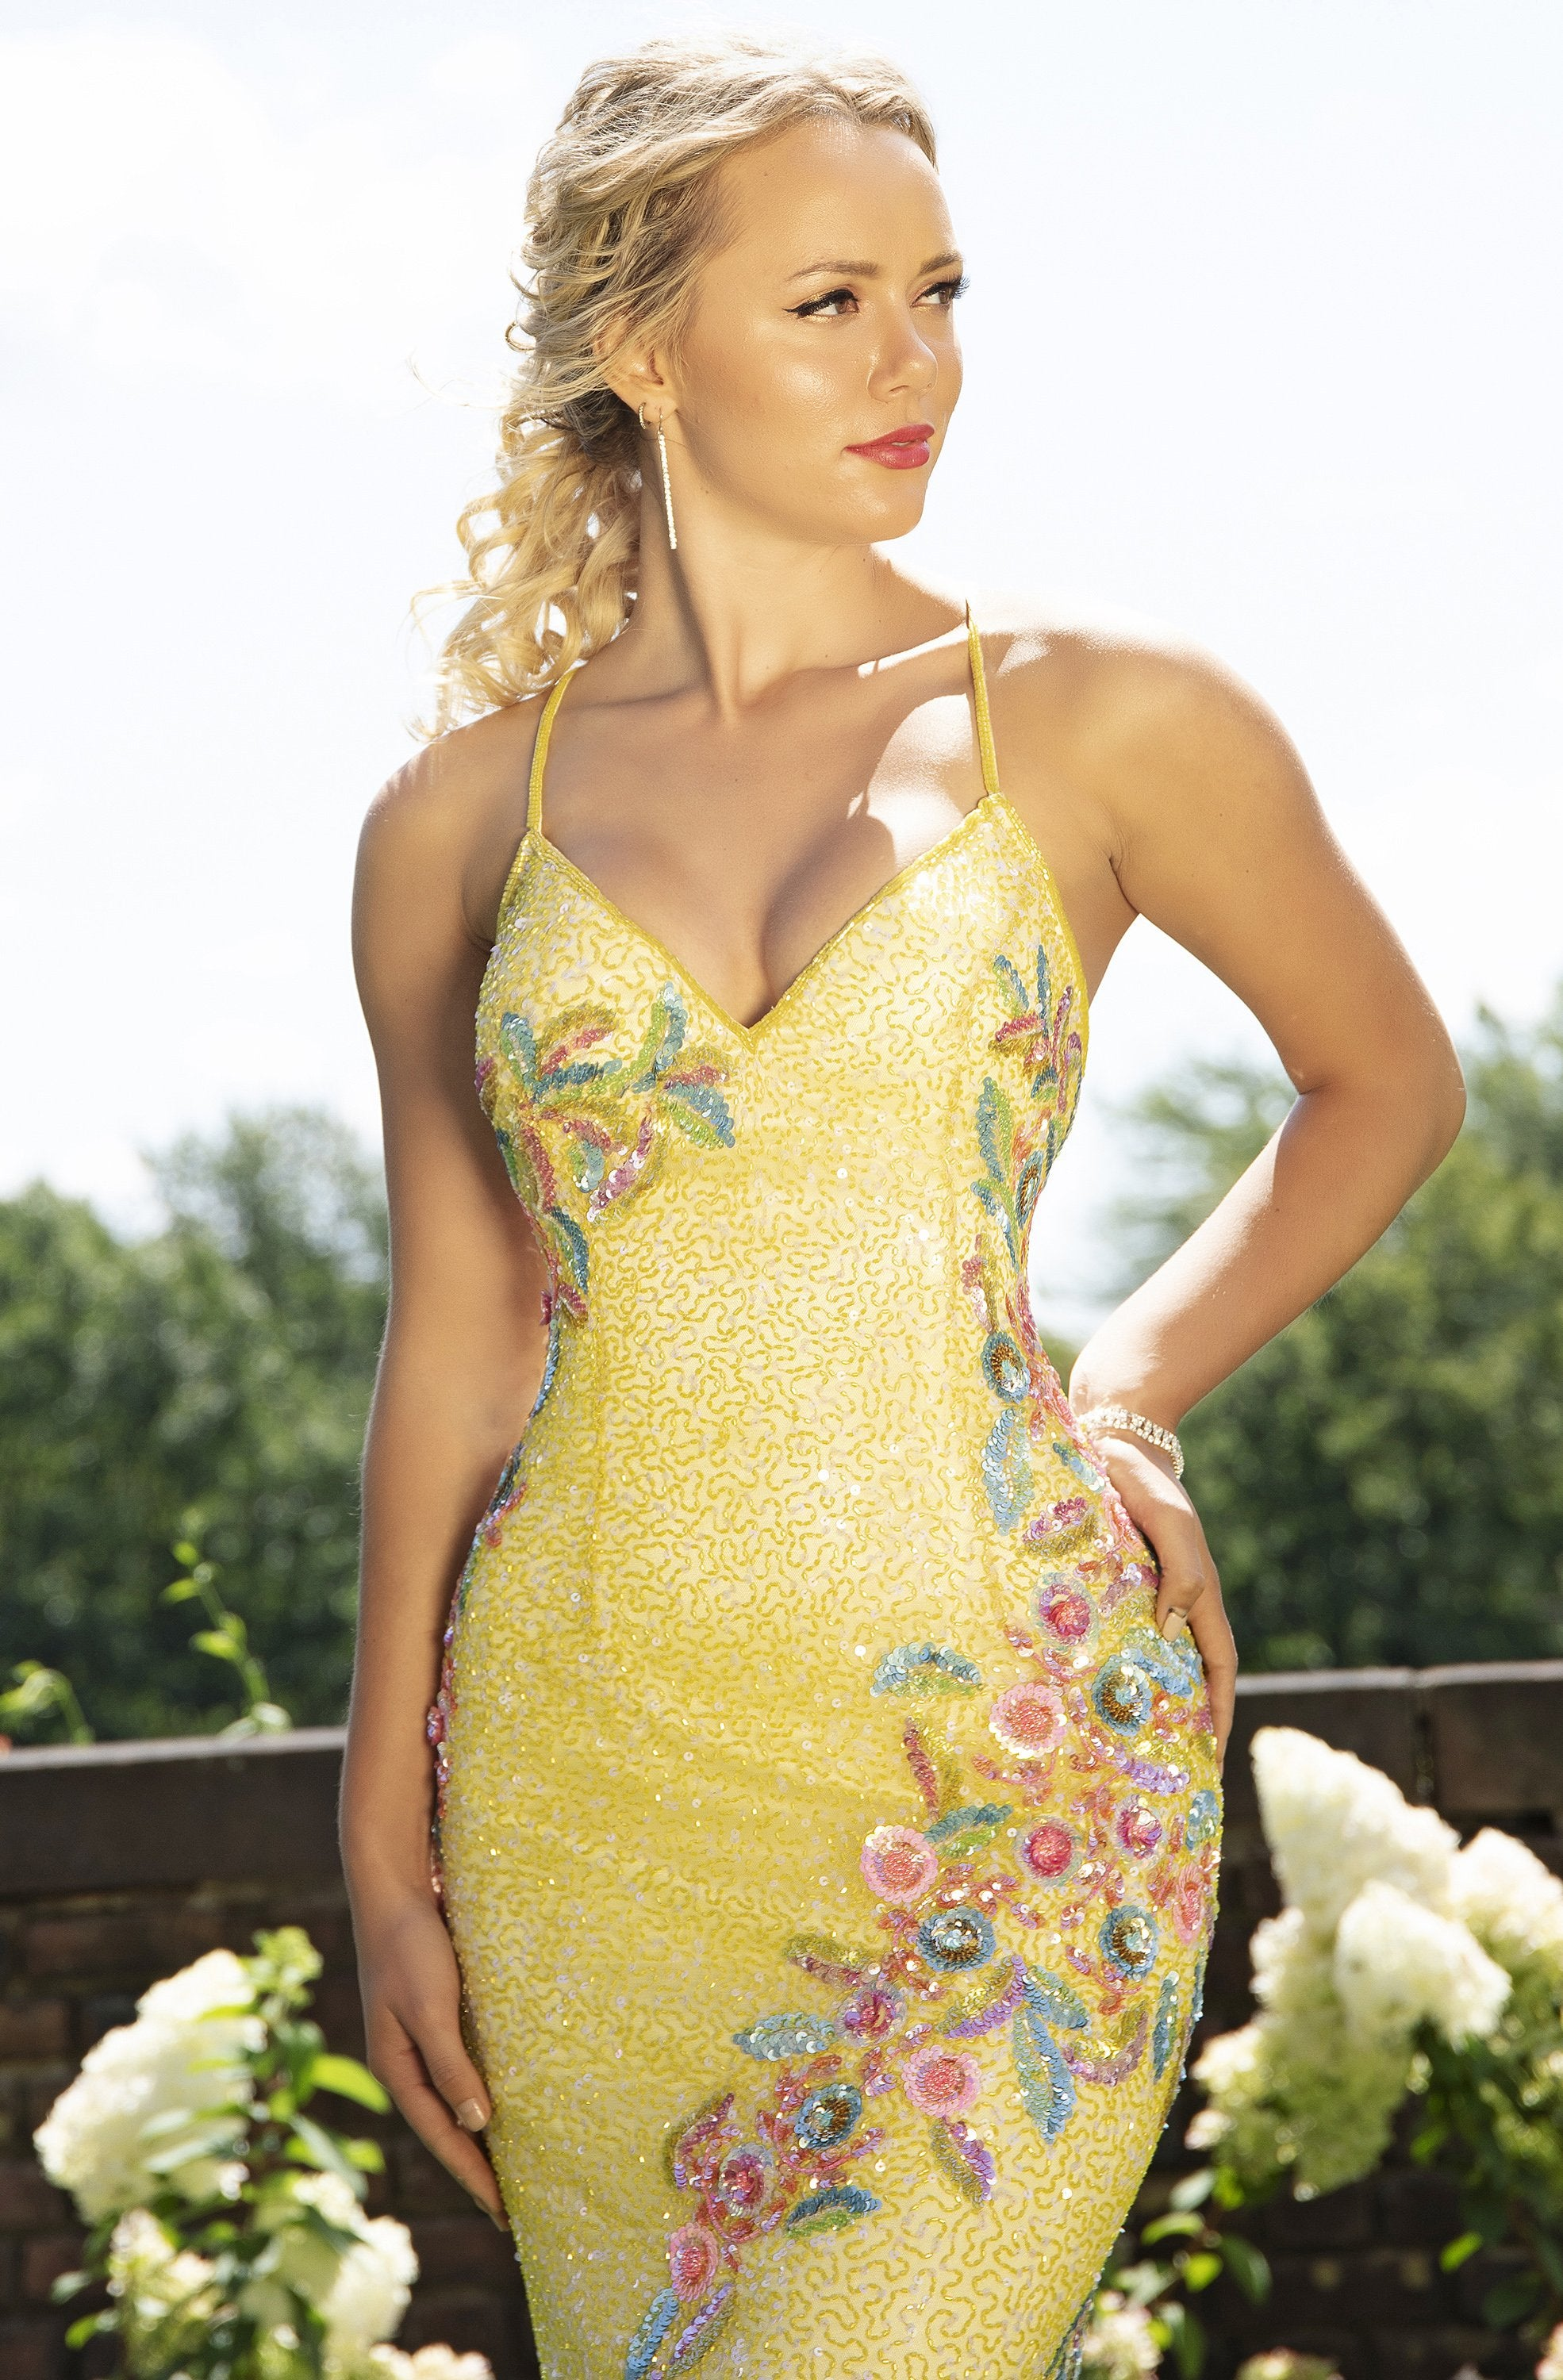 Primavera Couture - 3243 Vibrant Contrast Floral Beaded Gown In Yellow and Multi-Color